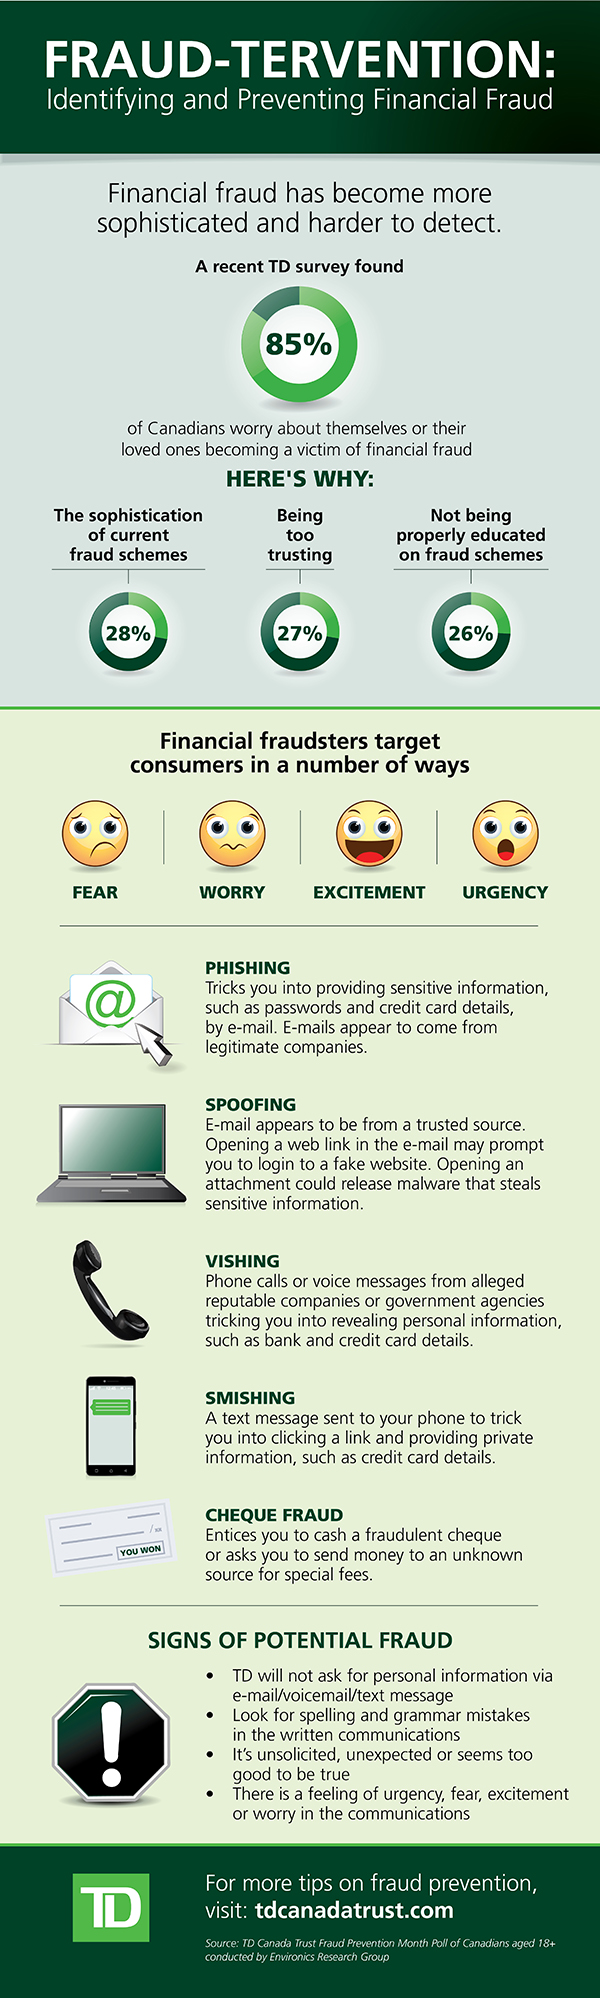 td-fraud-prevention-infographic